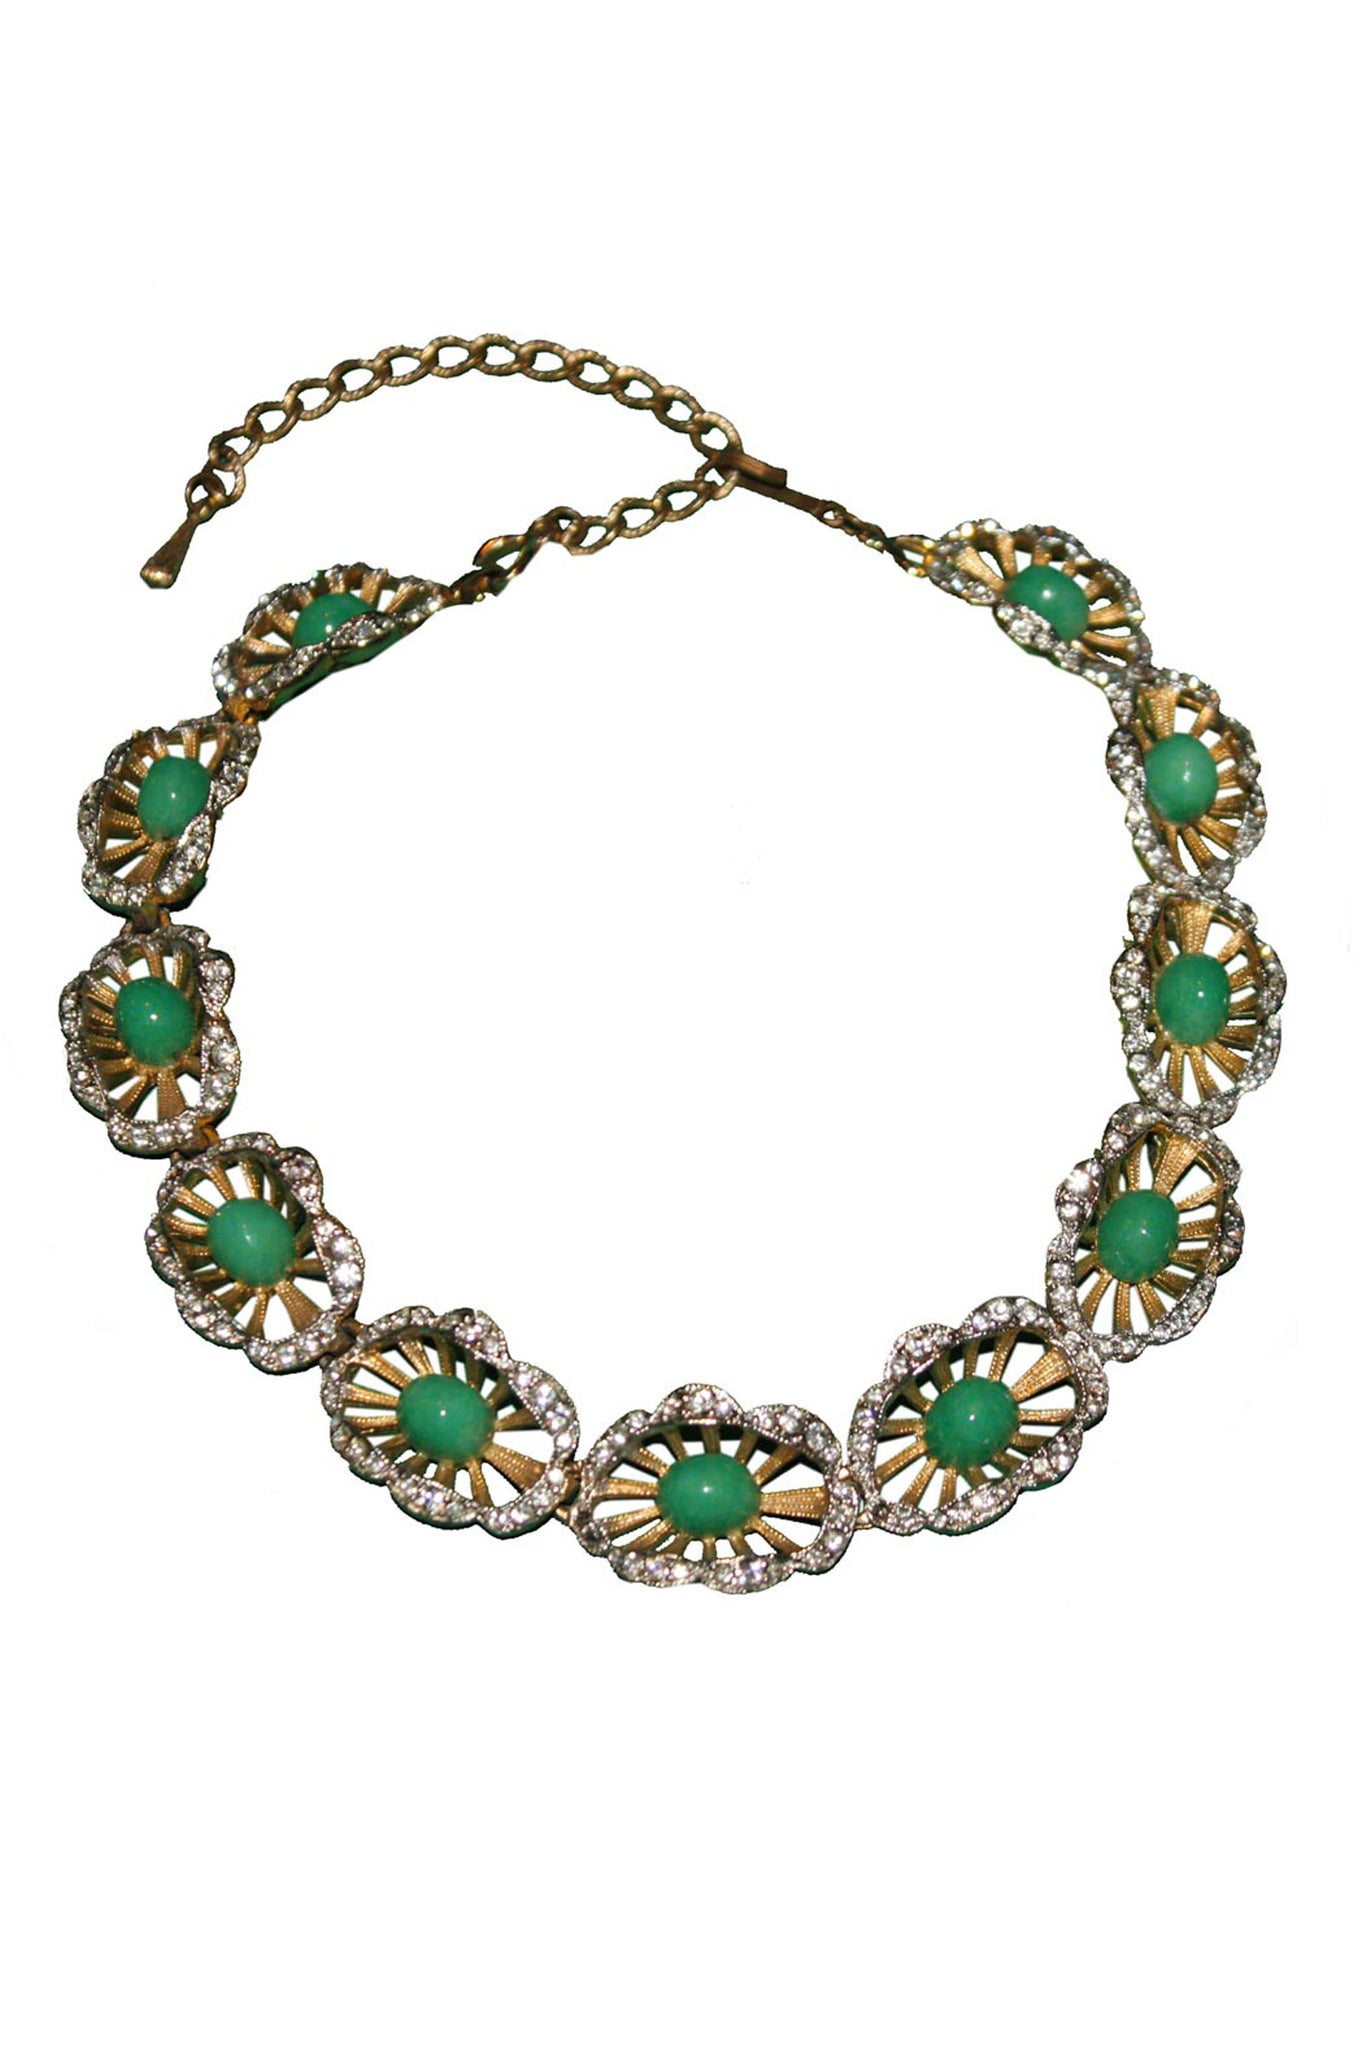 Vintage 40's necklace - SoLovesVintage